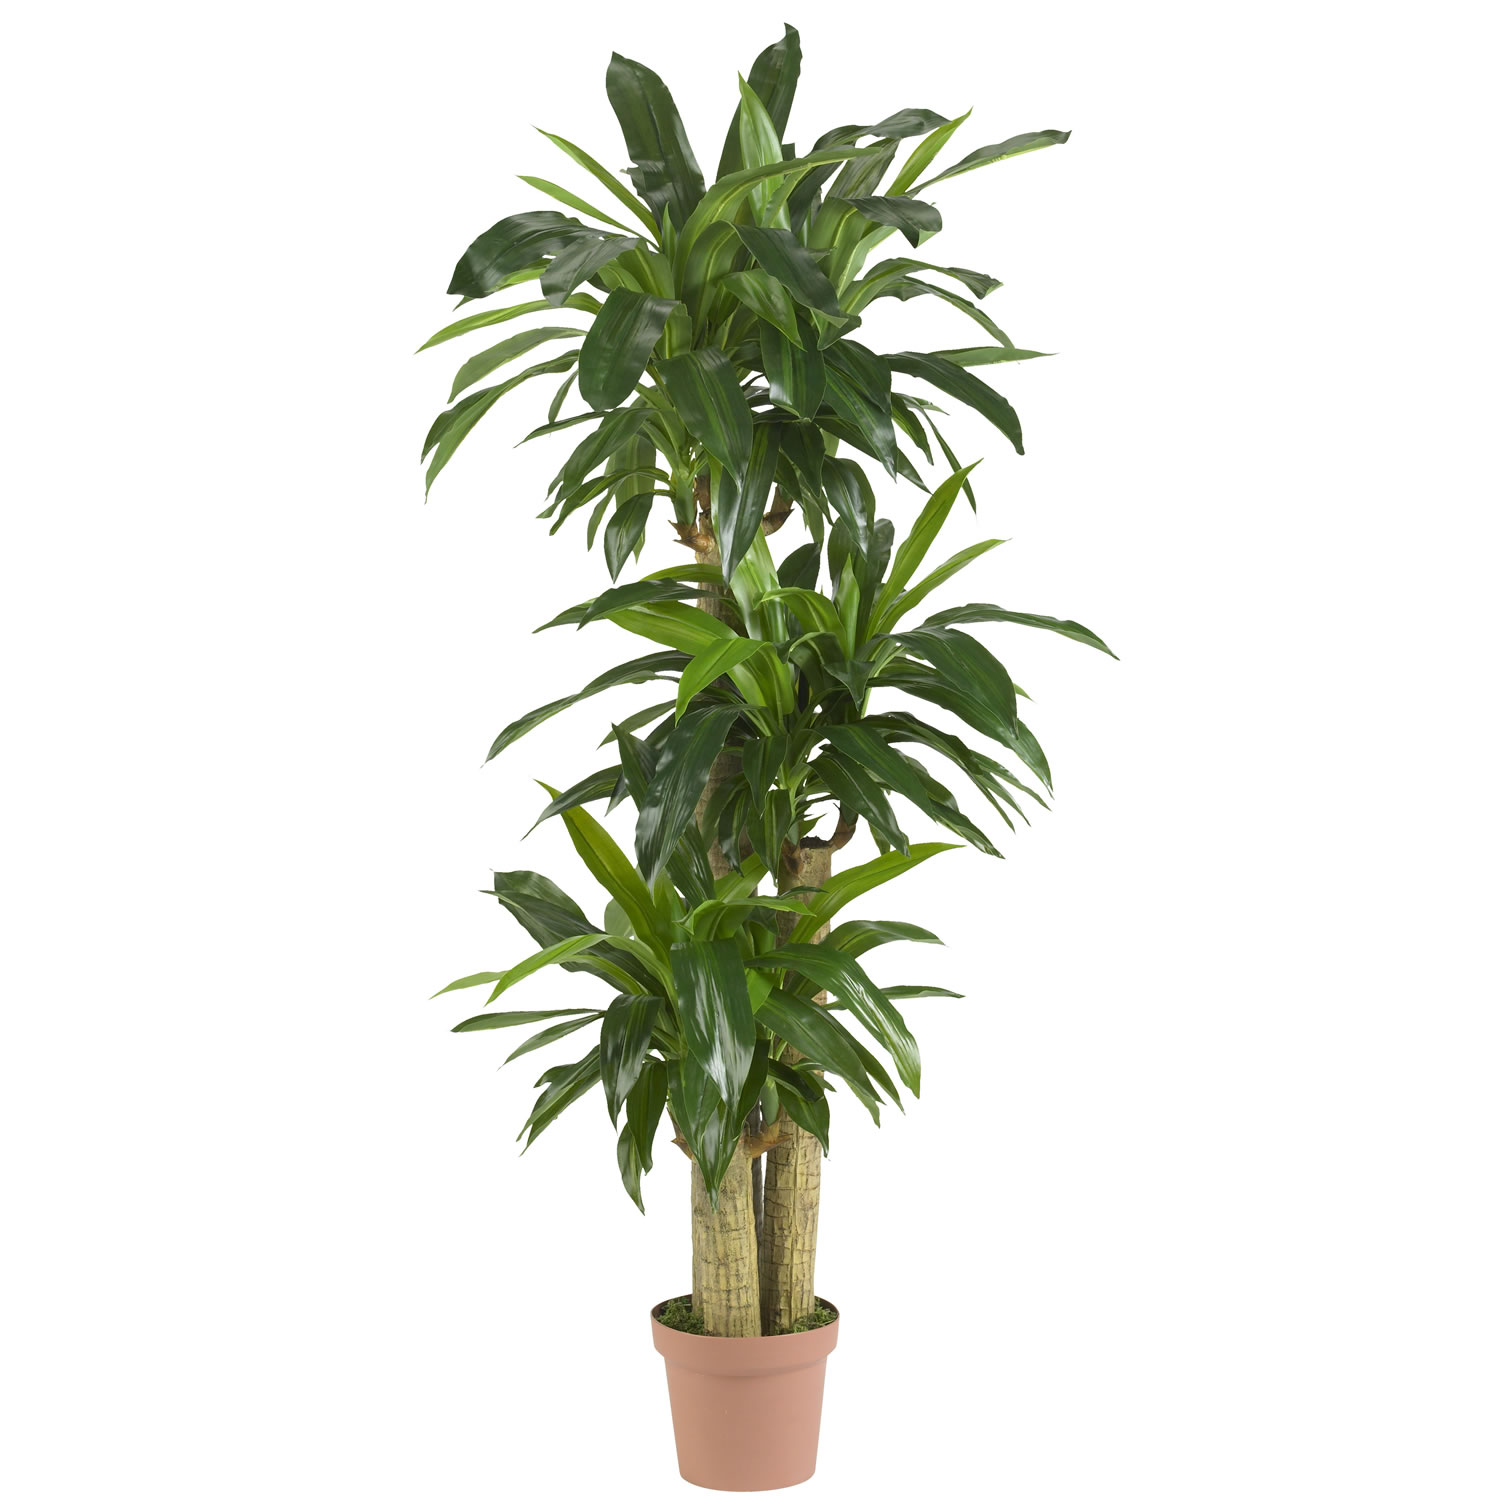 57 Inch Corn Stalk Dracaena Potted 6584